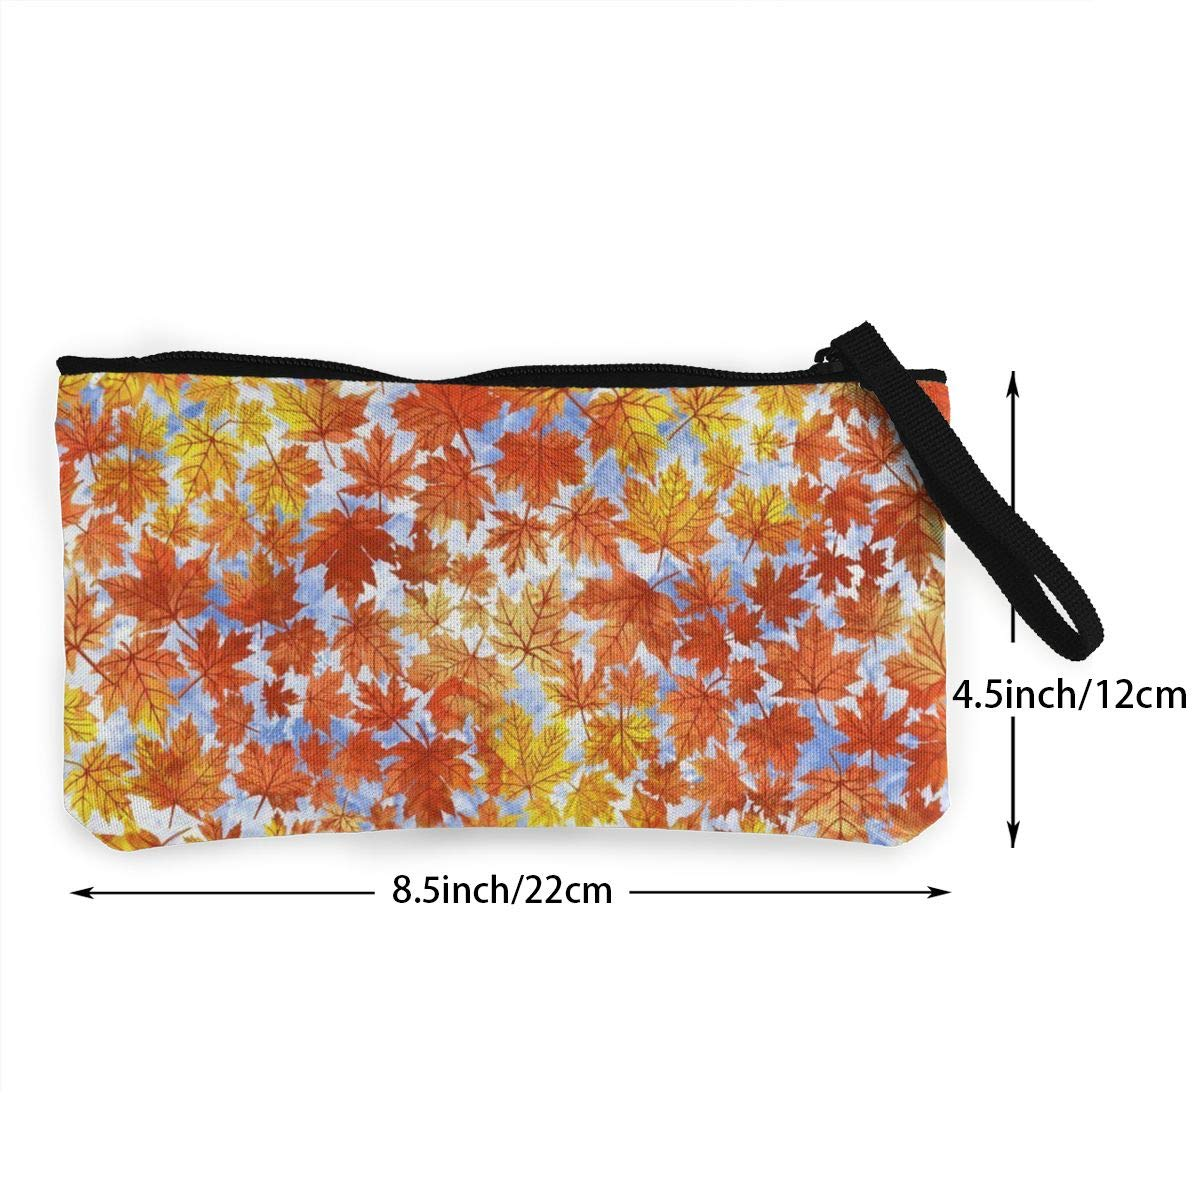 Coin Pouch Fall Falling Autumn Leaves Canvas Coin Purse Cellphone Card Bag With Handle And Zipper